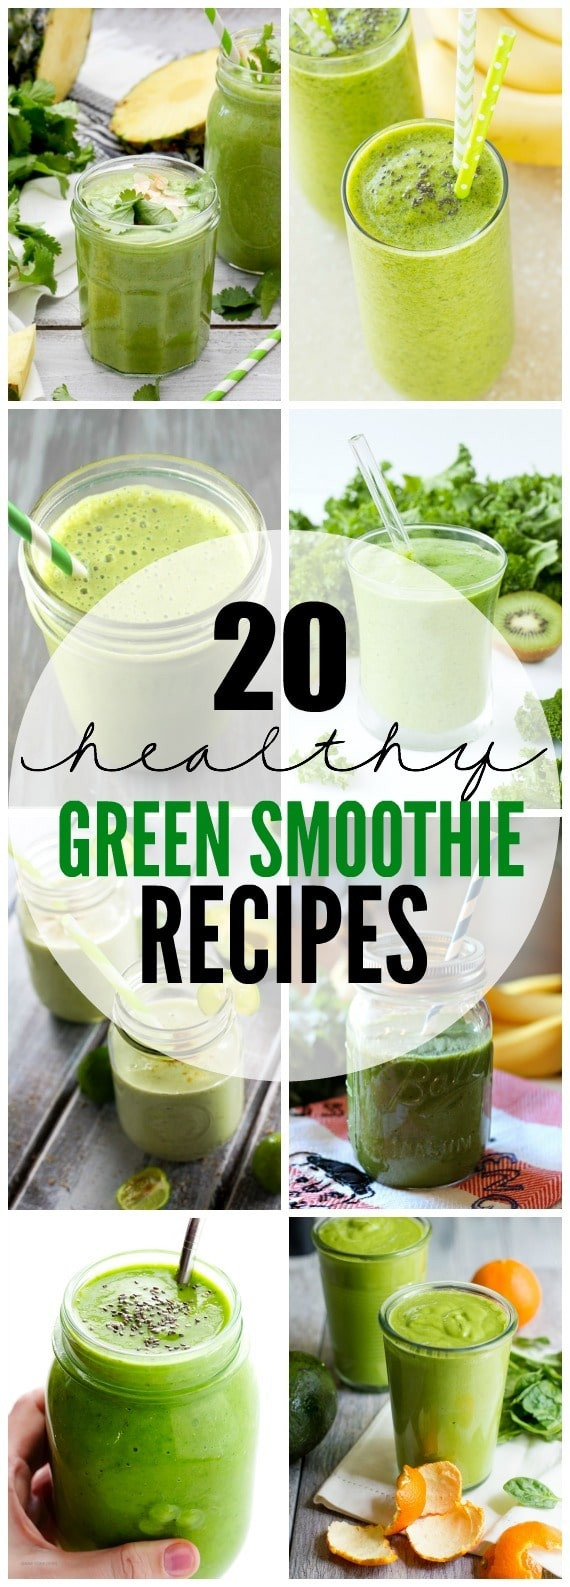 Simple Smoothie Recipes  20 Healthy Green Smoothie Recipes Yummy Healthy Easy